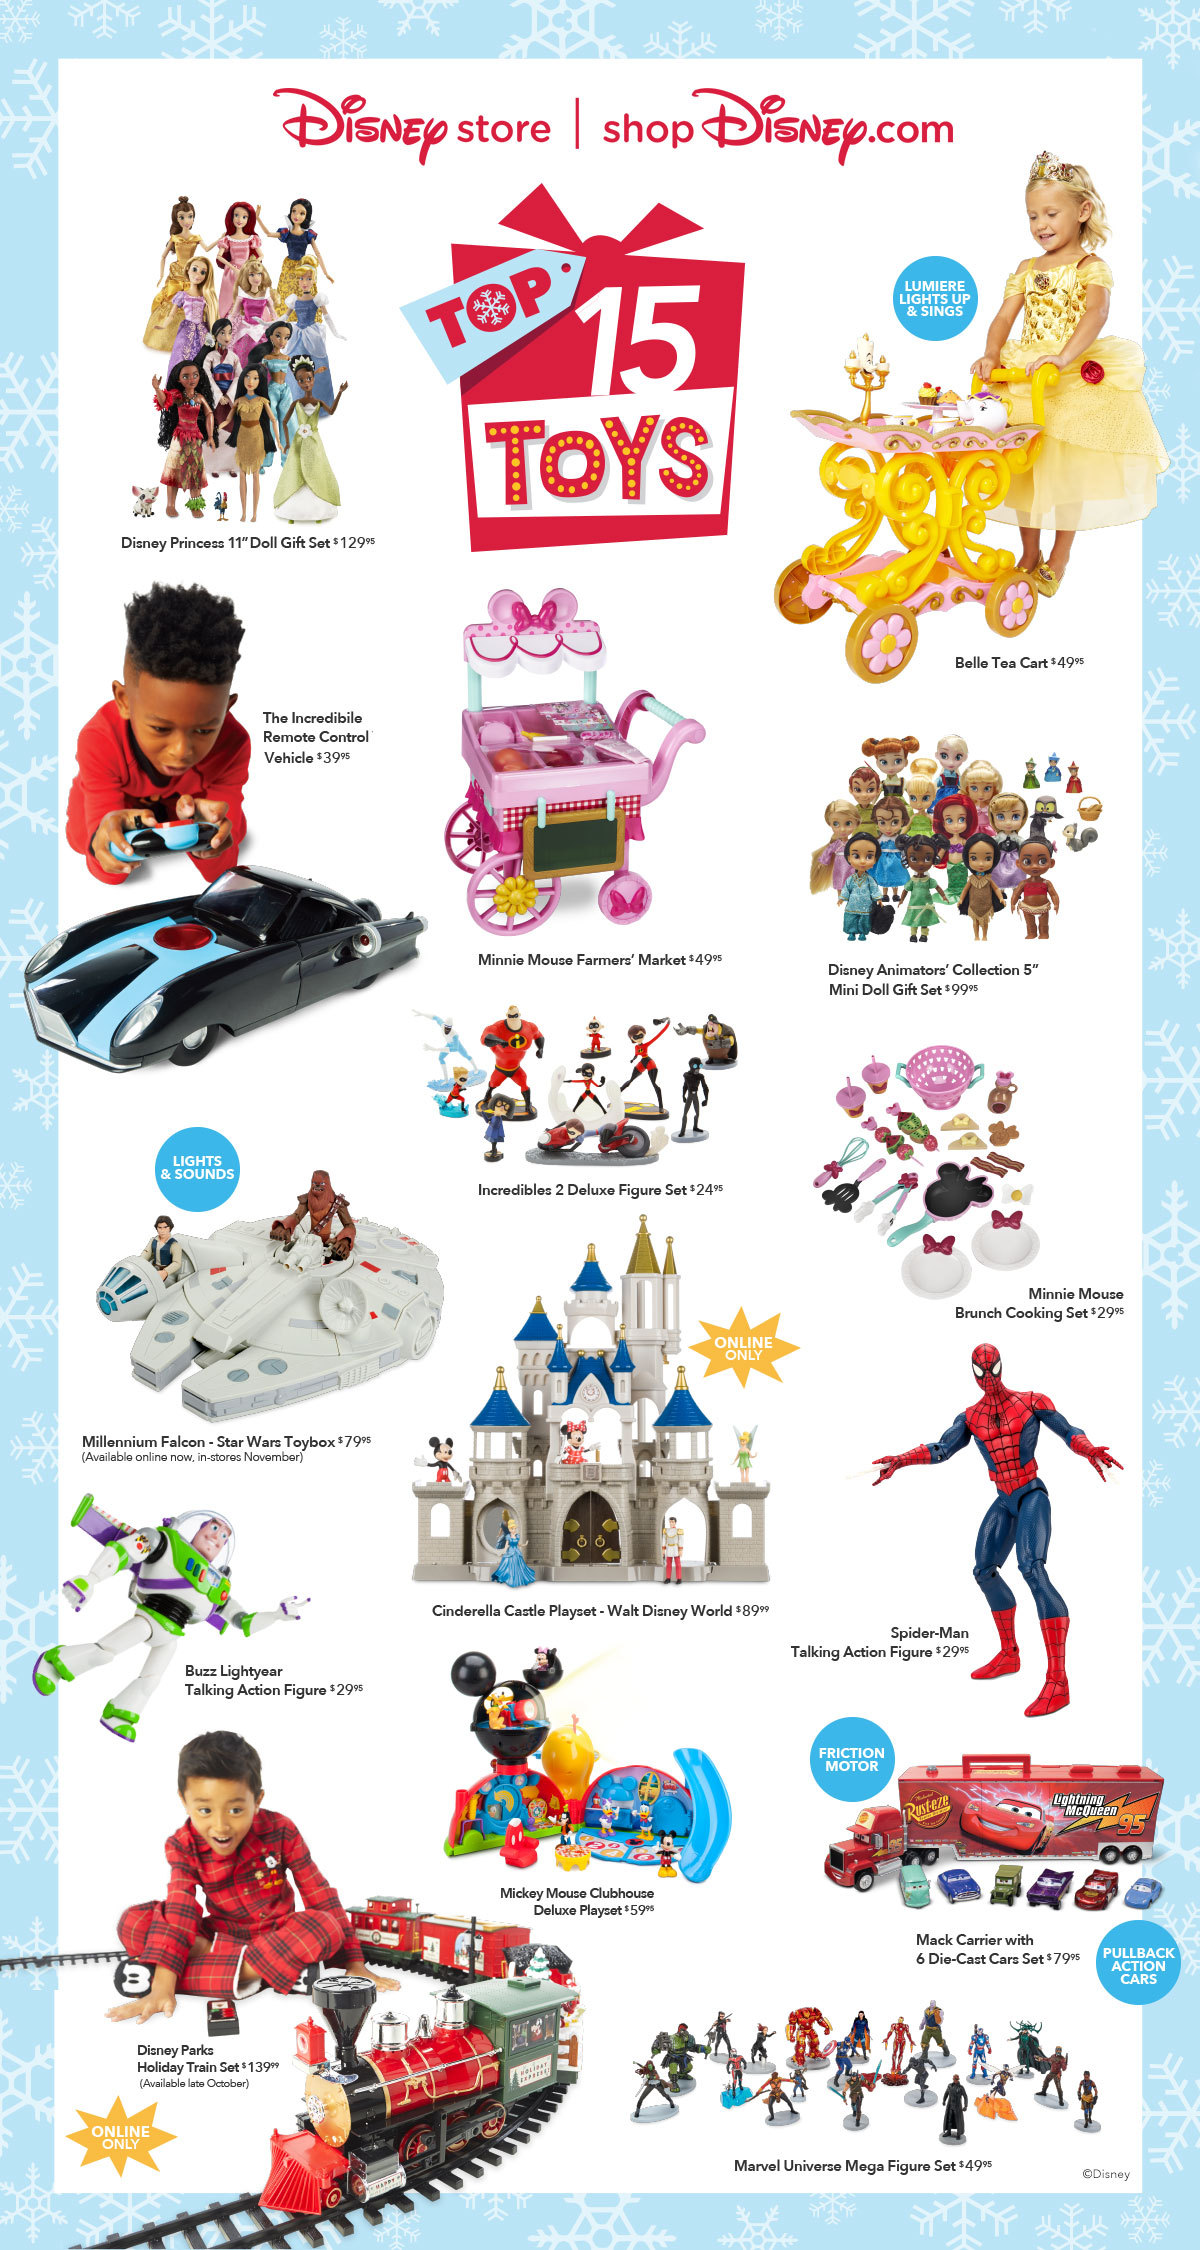 Disney Store And Shopdisney Reveal The Top 15 Holiday Toys List